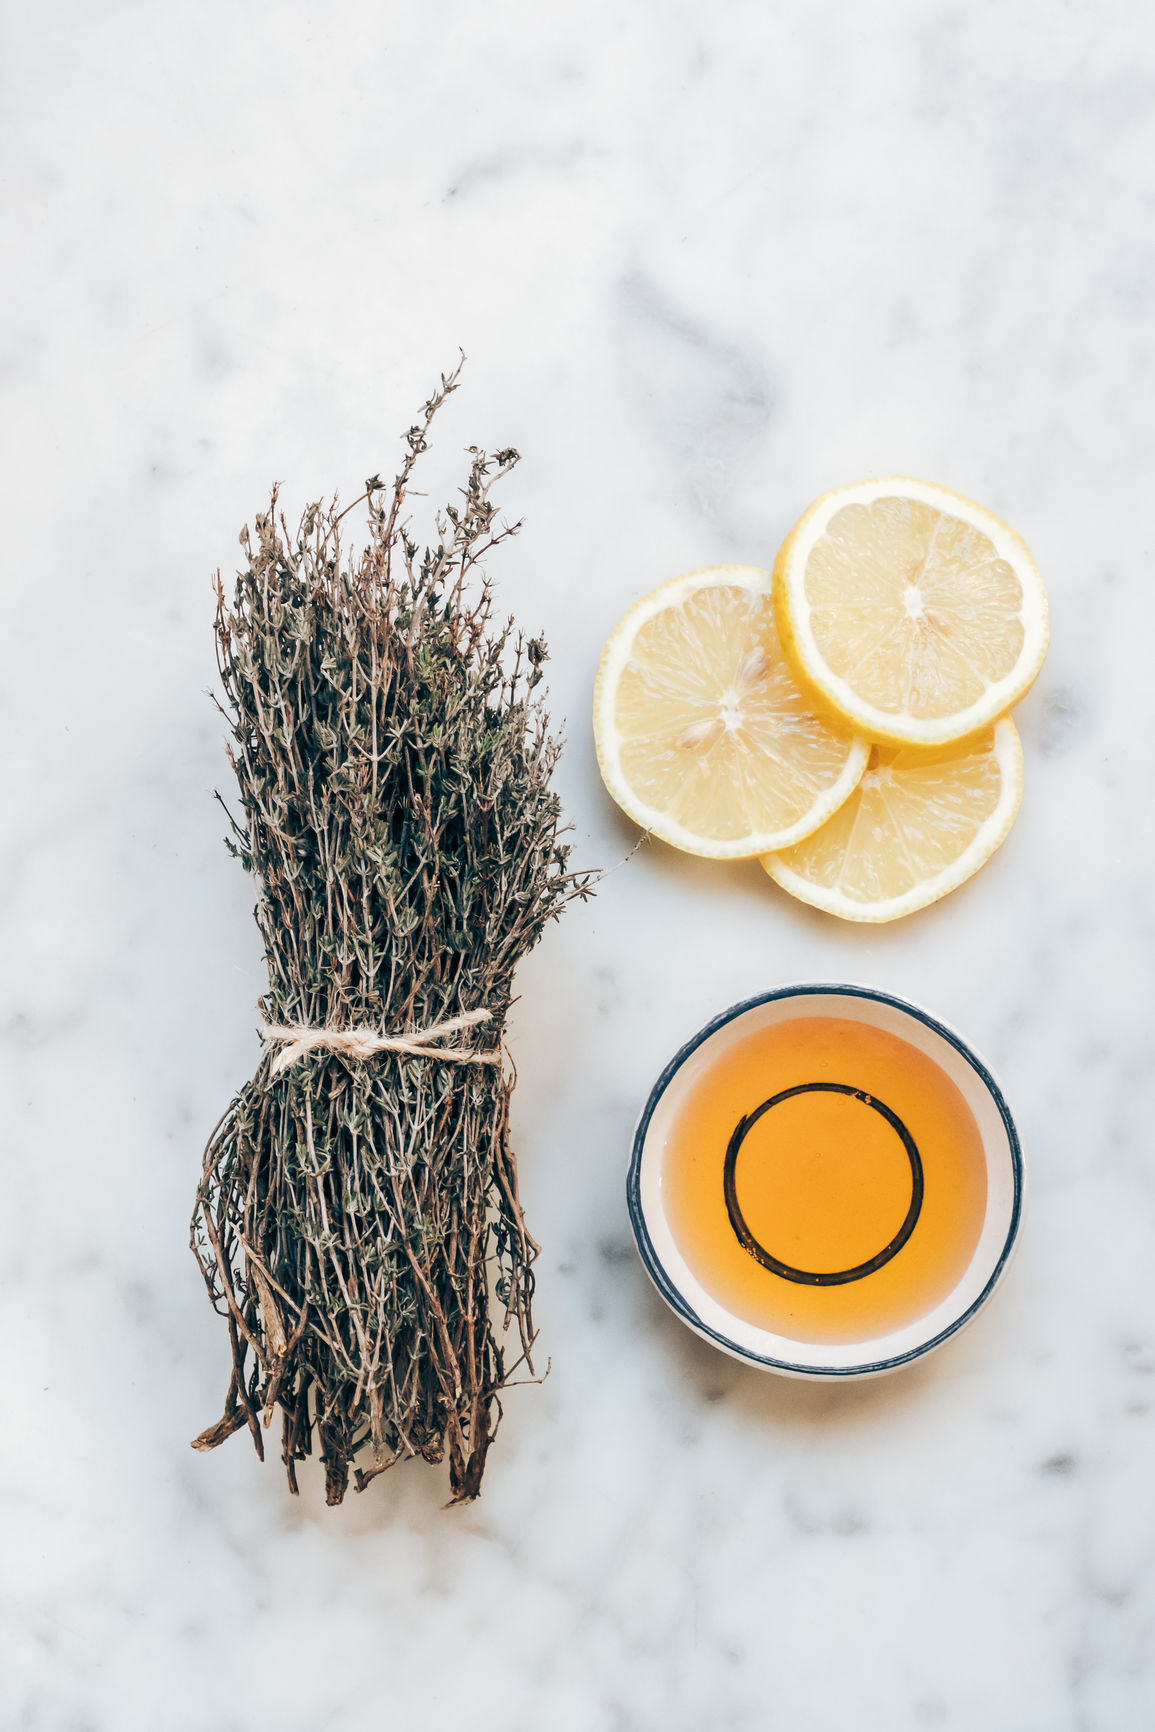 A bundle of thyme next to lemon slices and a small bowl of honey